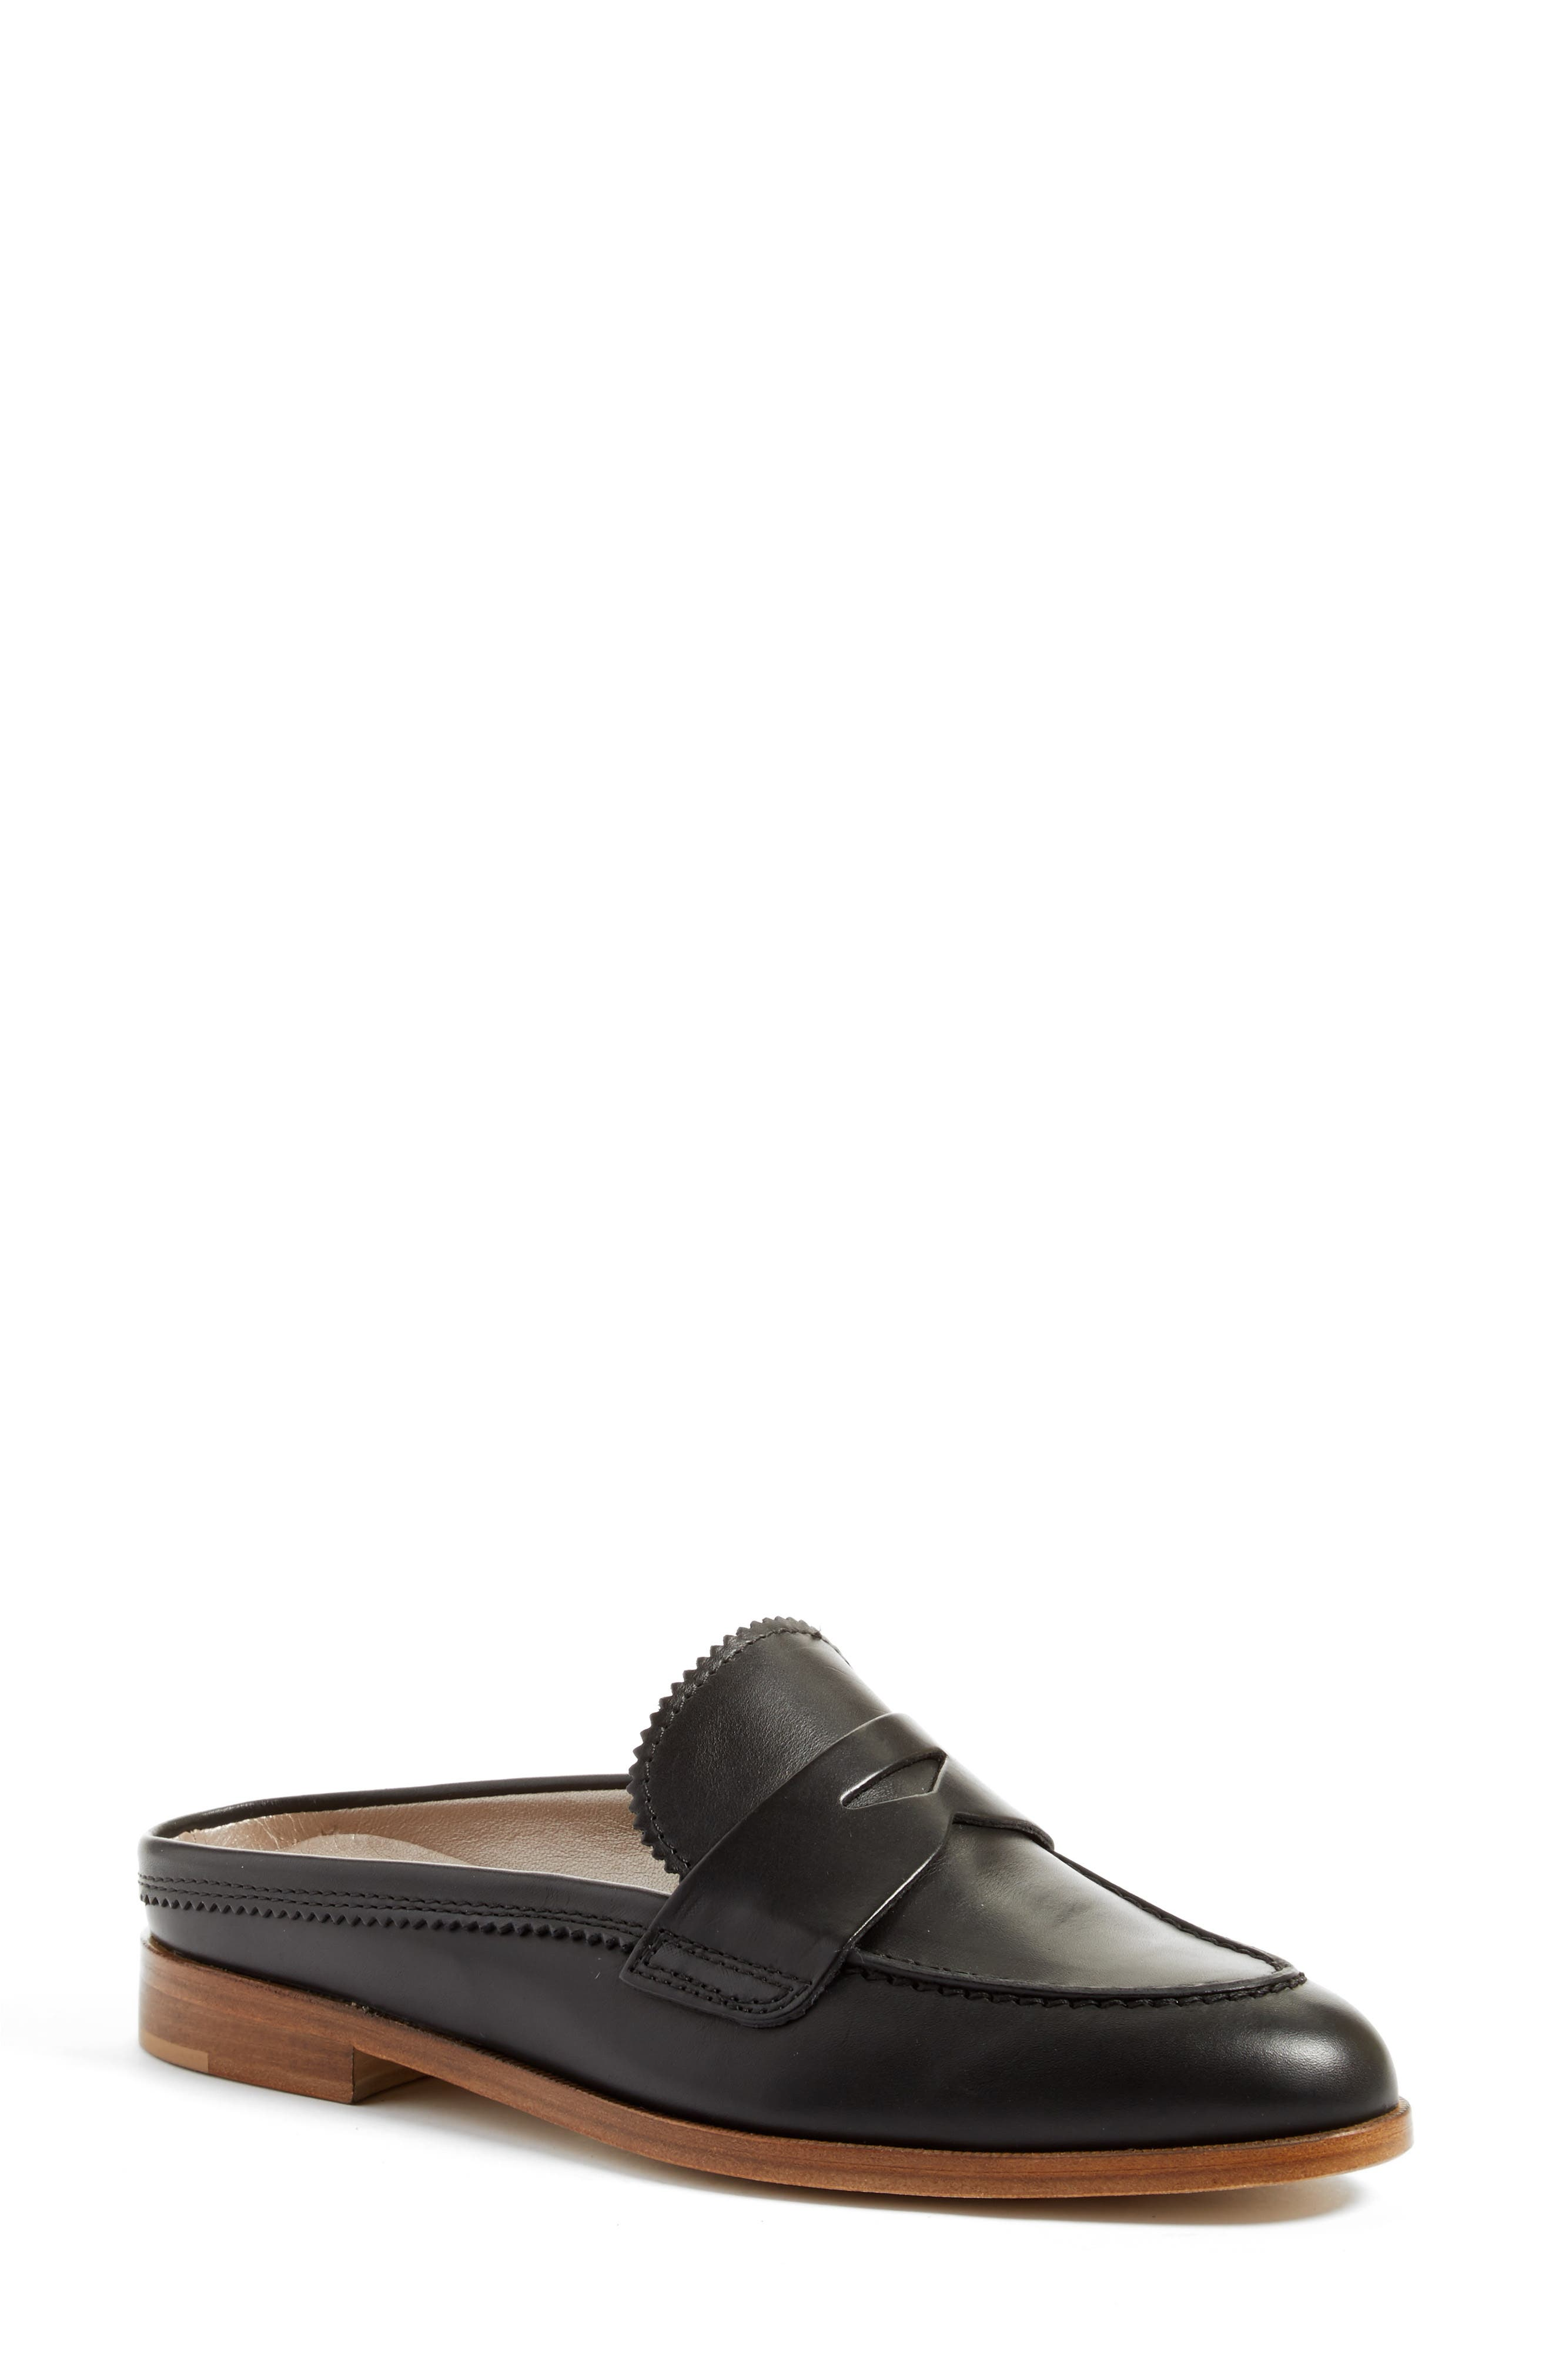 Penny Loafer Mule,                         Main,                         color,